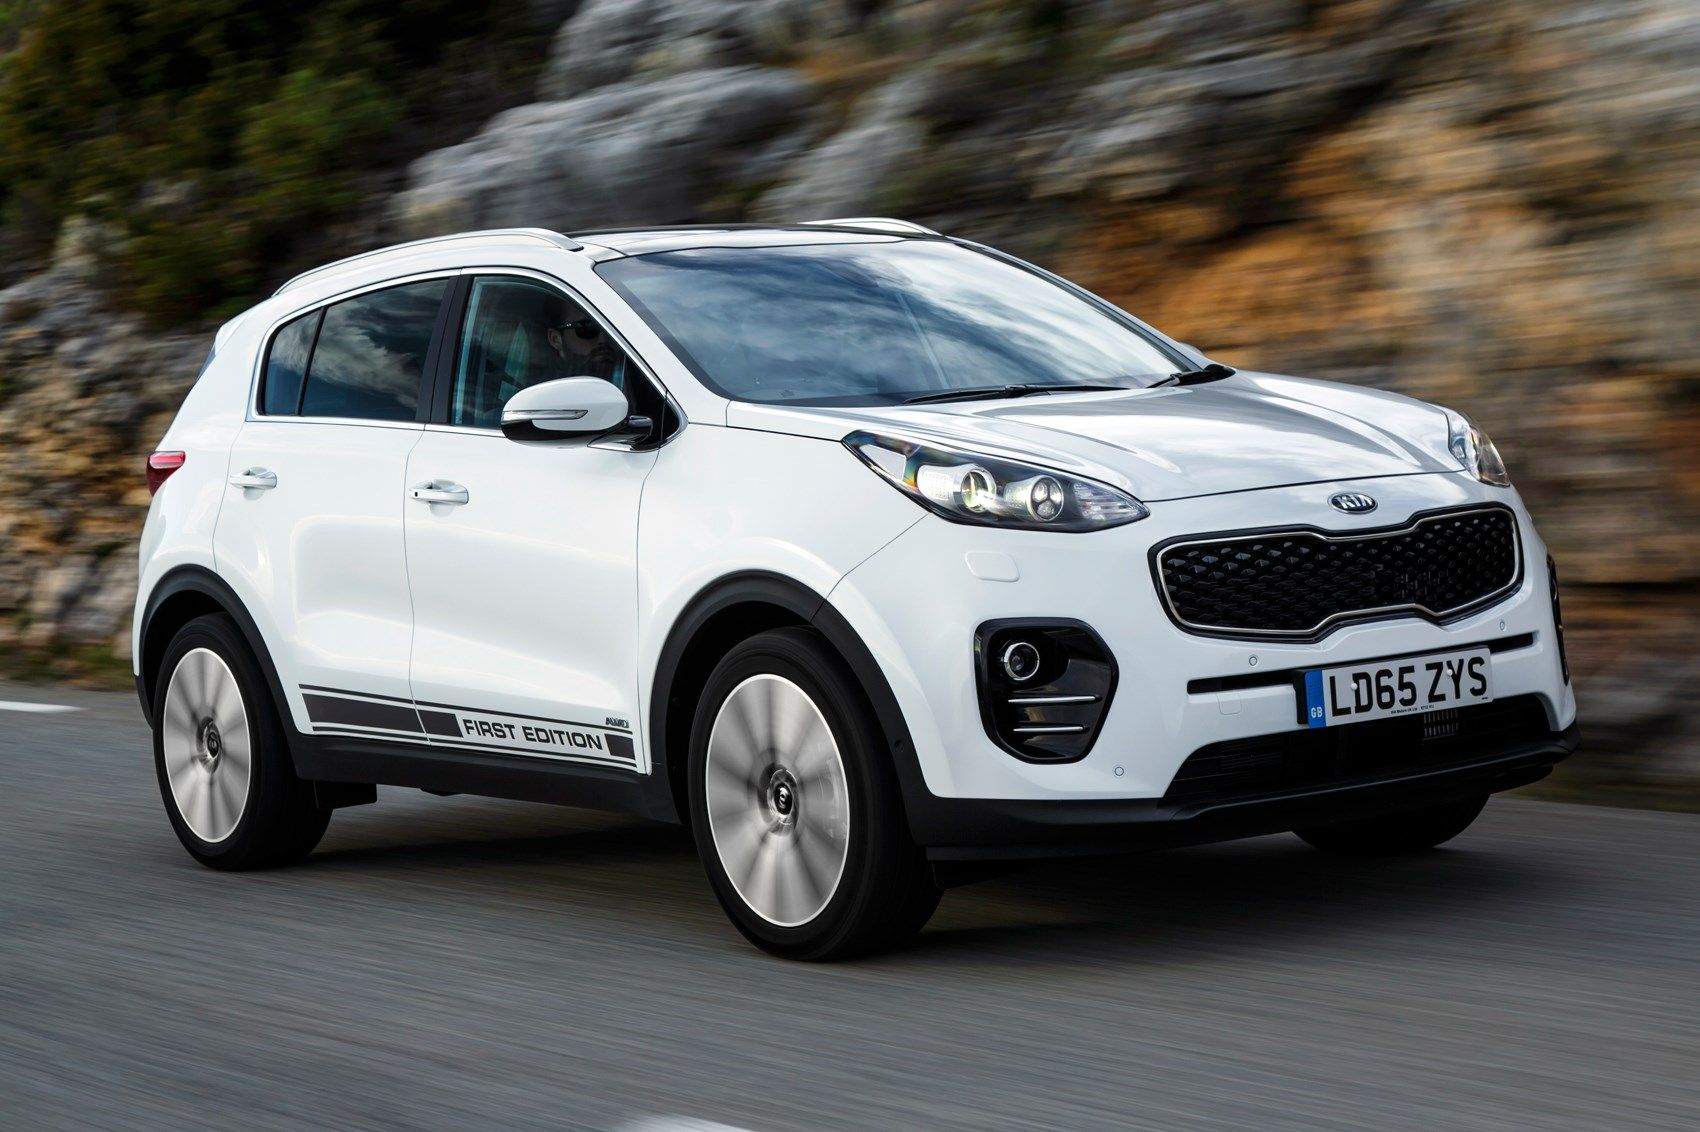 Kia Sportage First Edition 2.0 CRDi (2016) review Kia